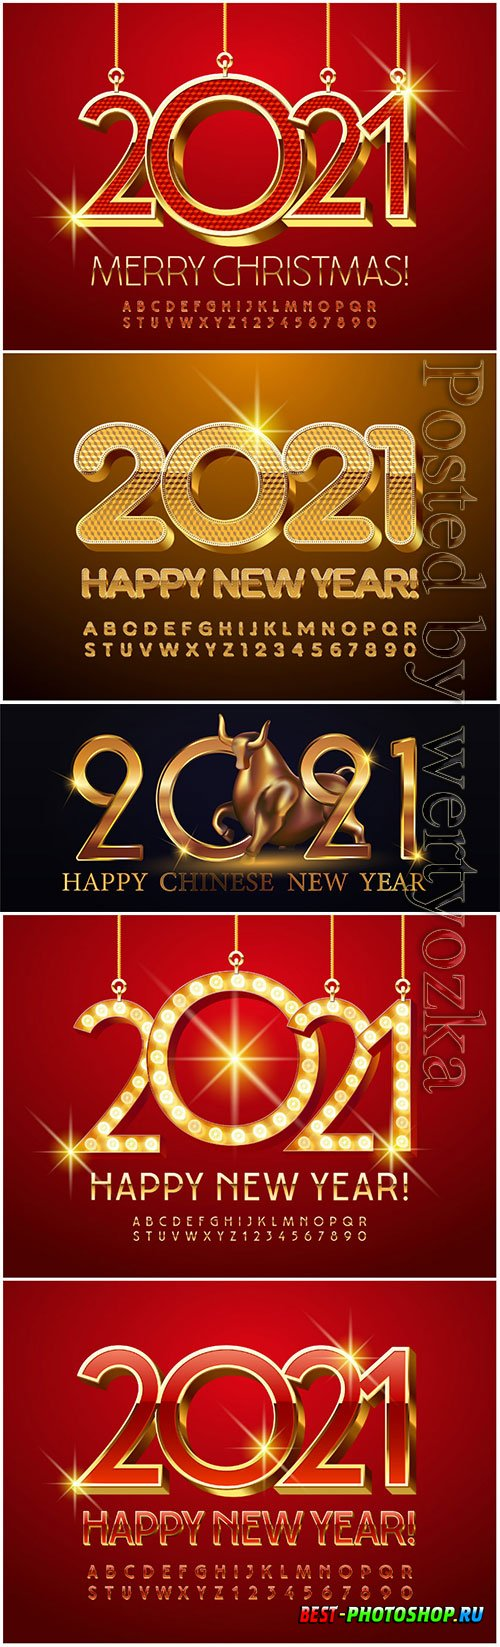 Merry christmas 2021, golde alphabet letters and numbers, shiny font